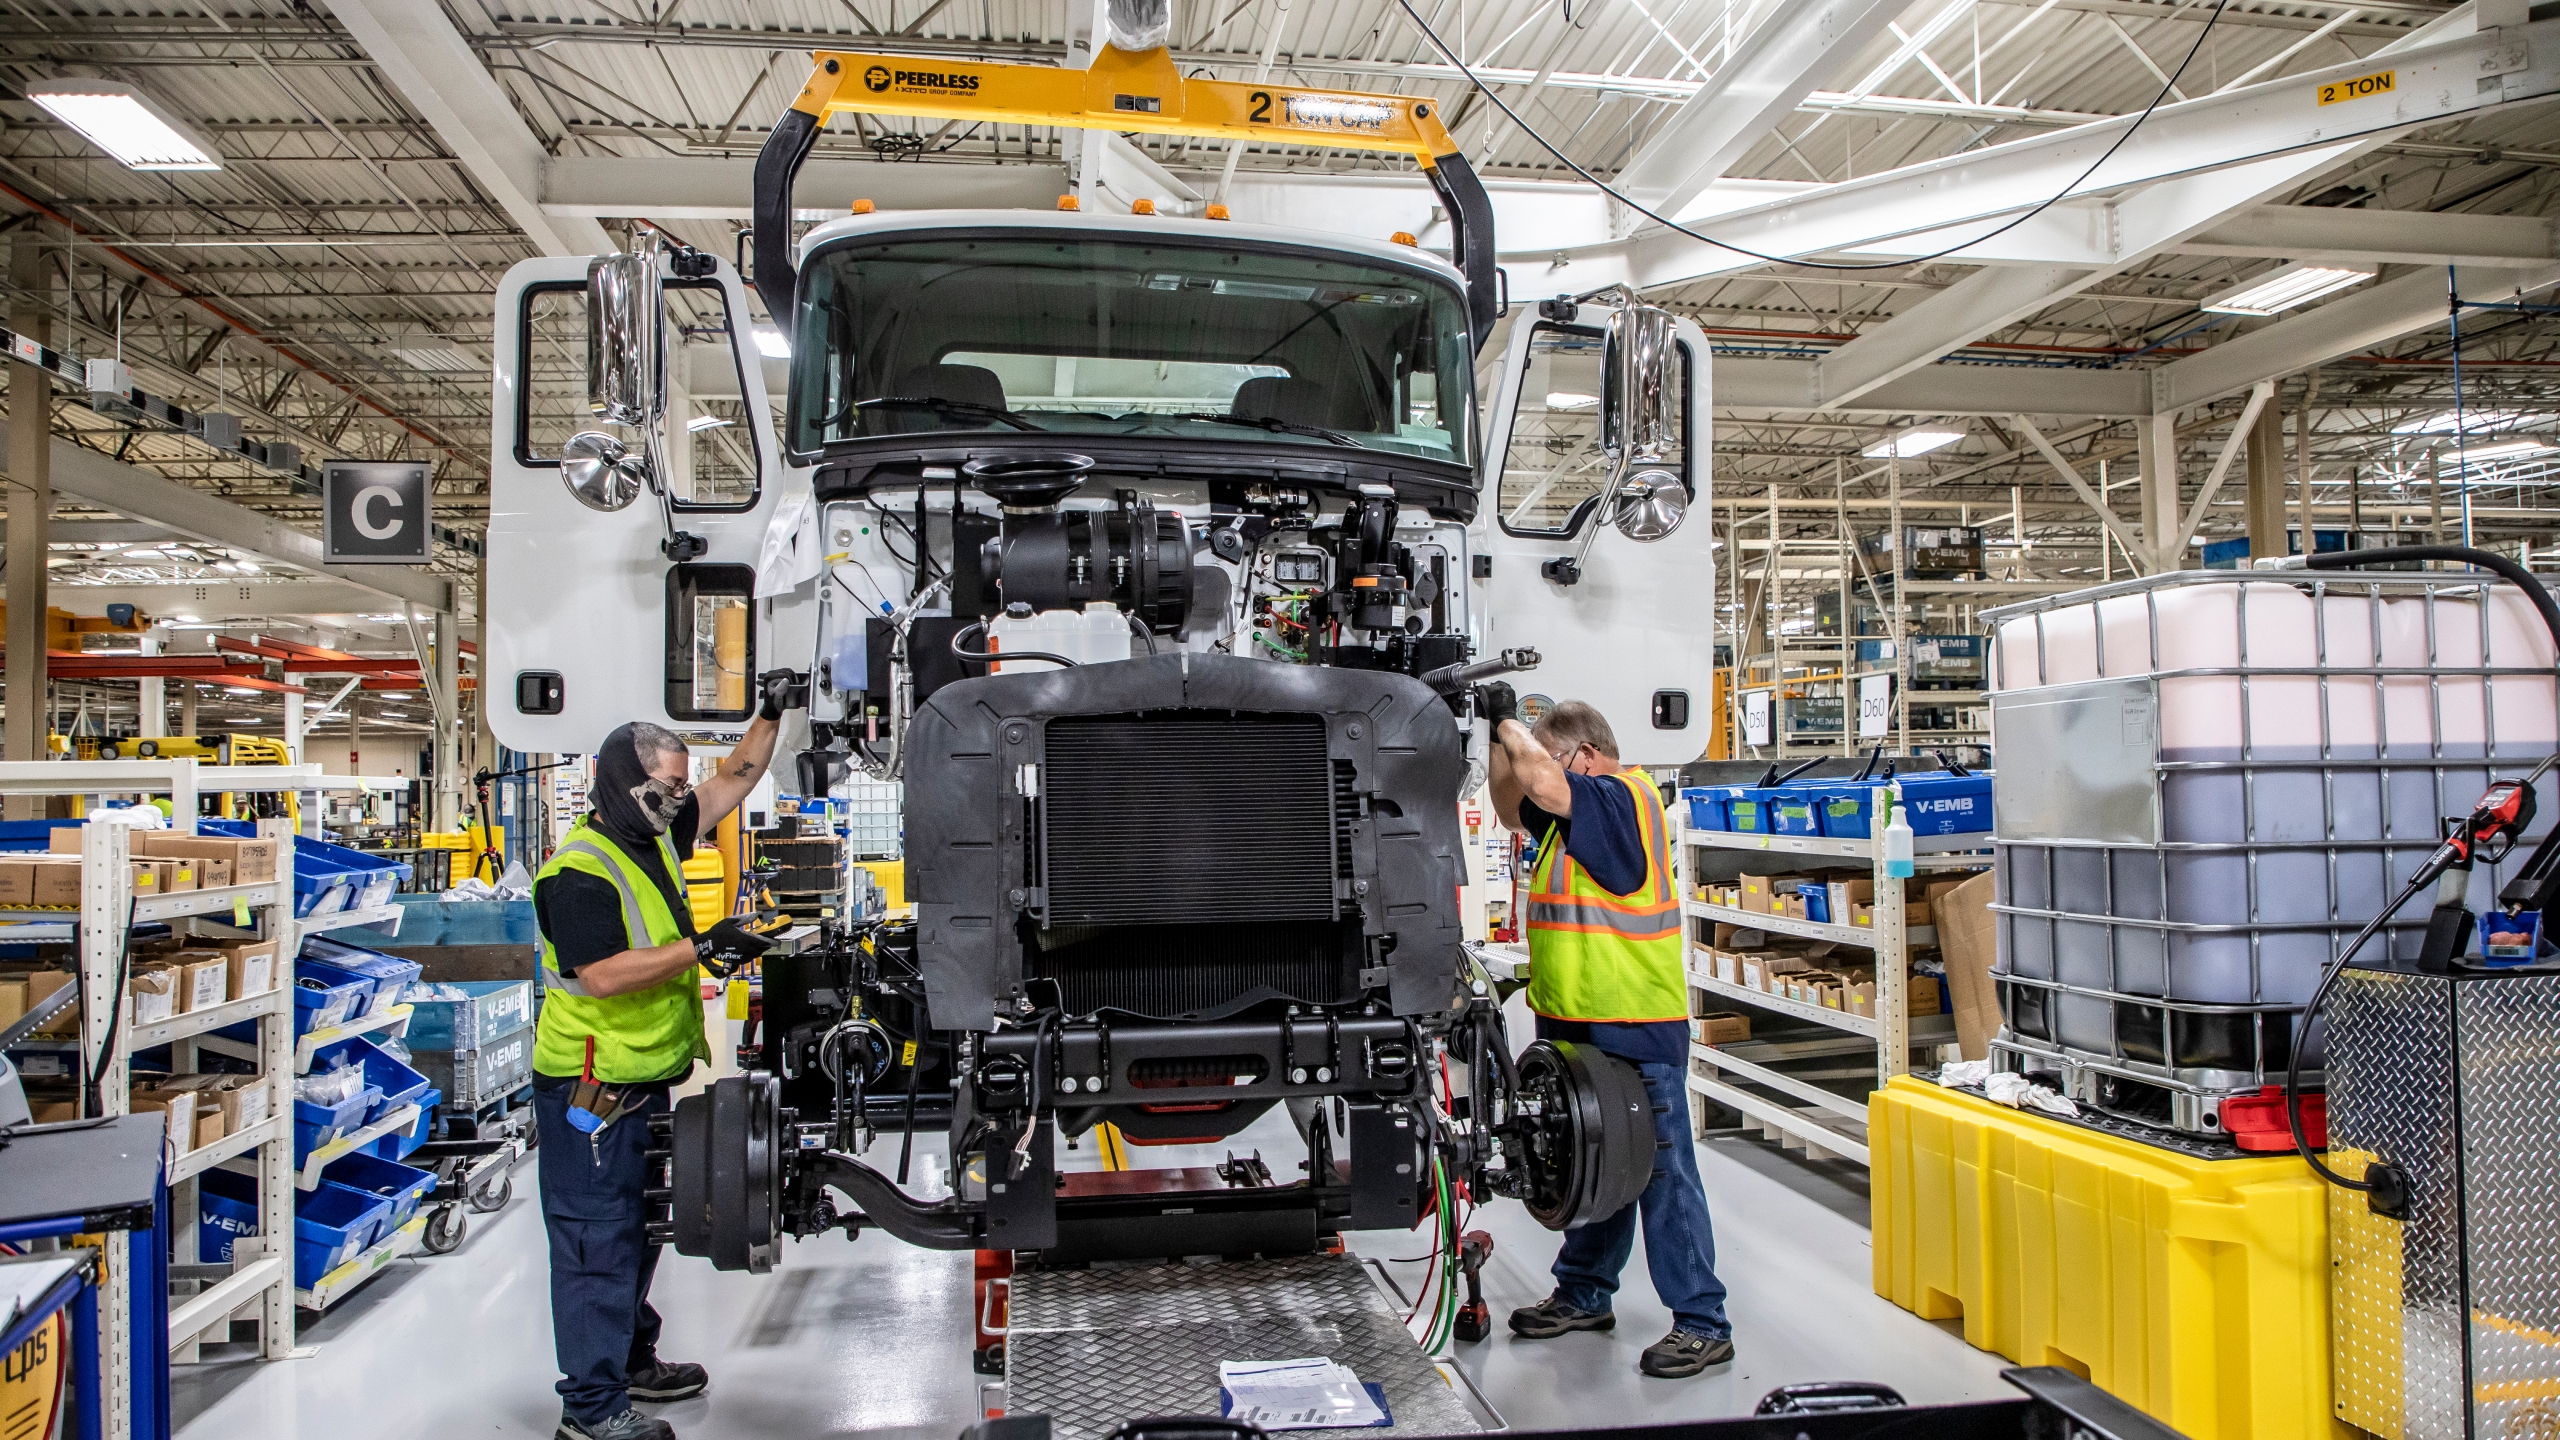 Mack Trucks' all-new Mack® MD Series of medium-duty vehicles is now in full production at Mack's new Roanoke Valley Operations (RVO) facility in the Roanoke Valley, Virginia. (Photo: Courtesy Mack Trucks)